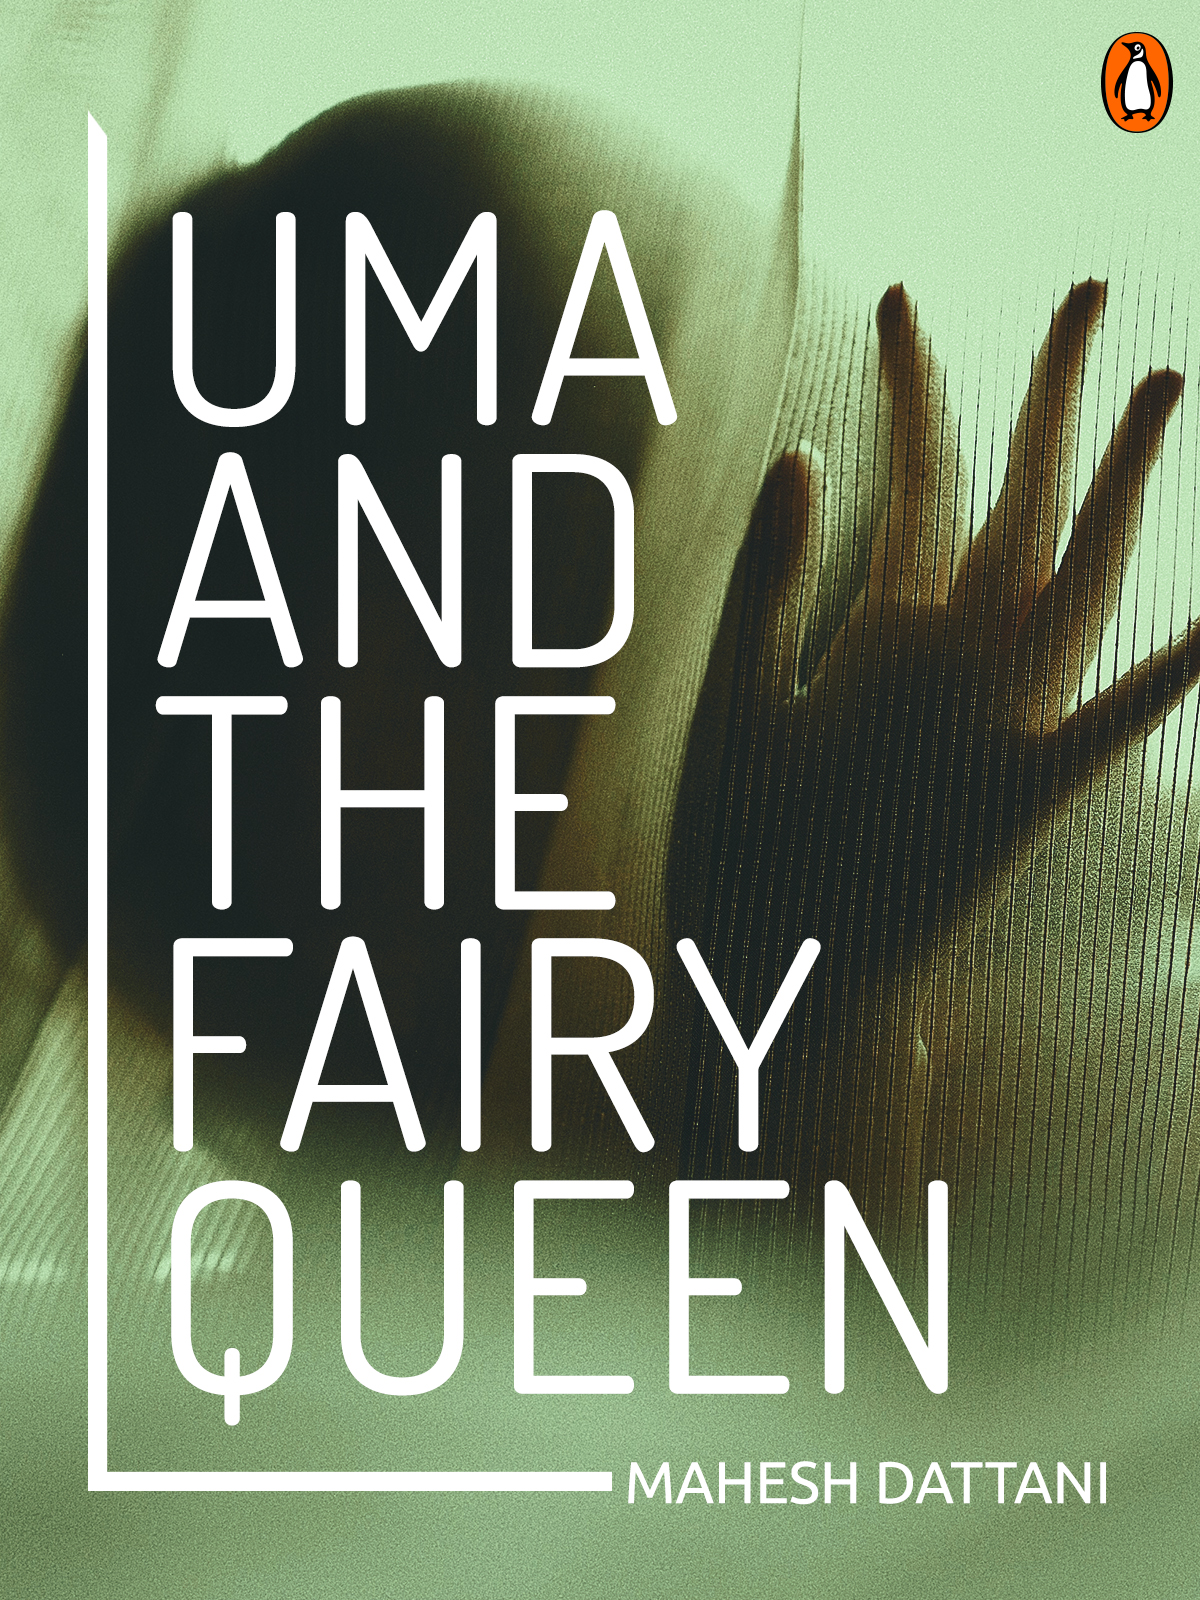 Uma and the Fairy Queen